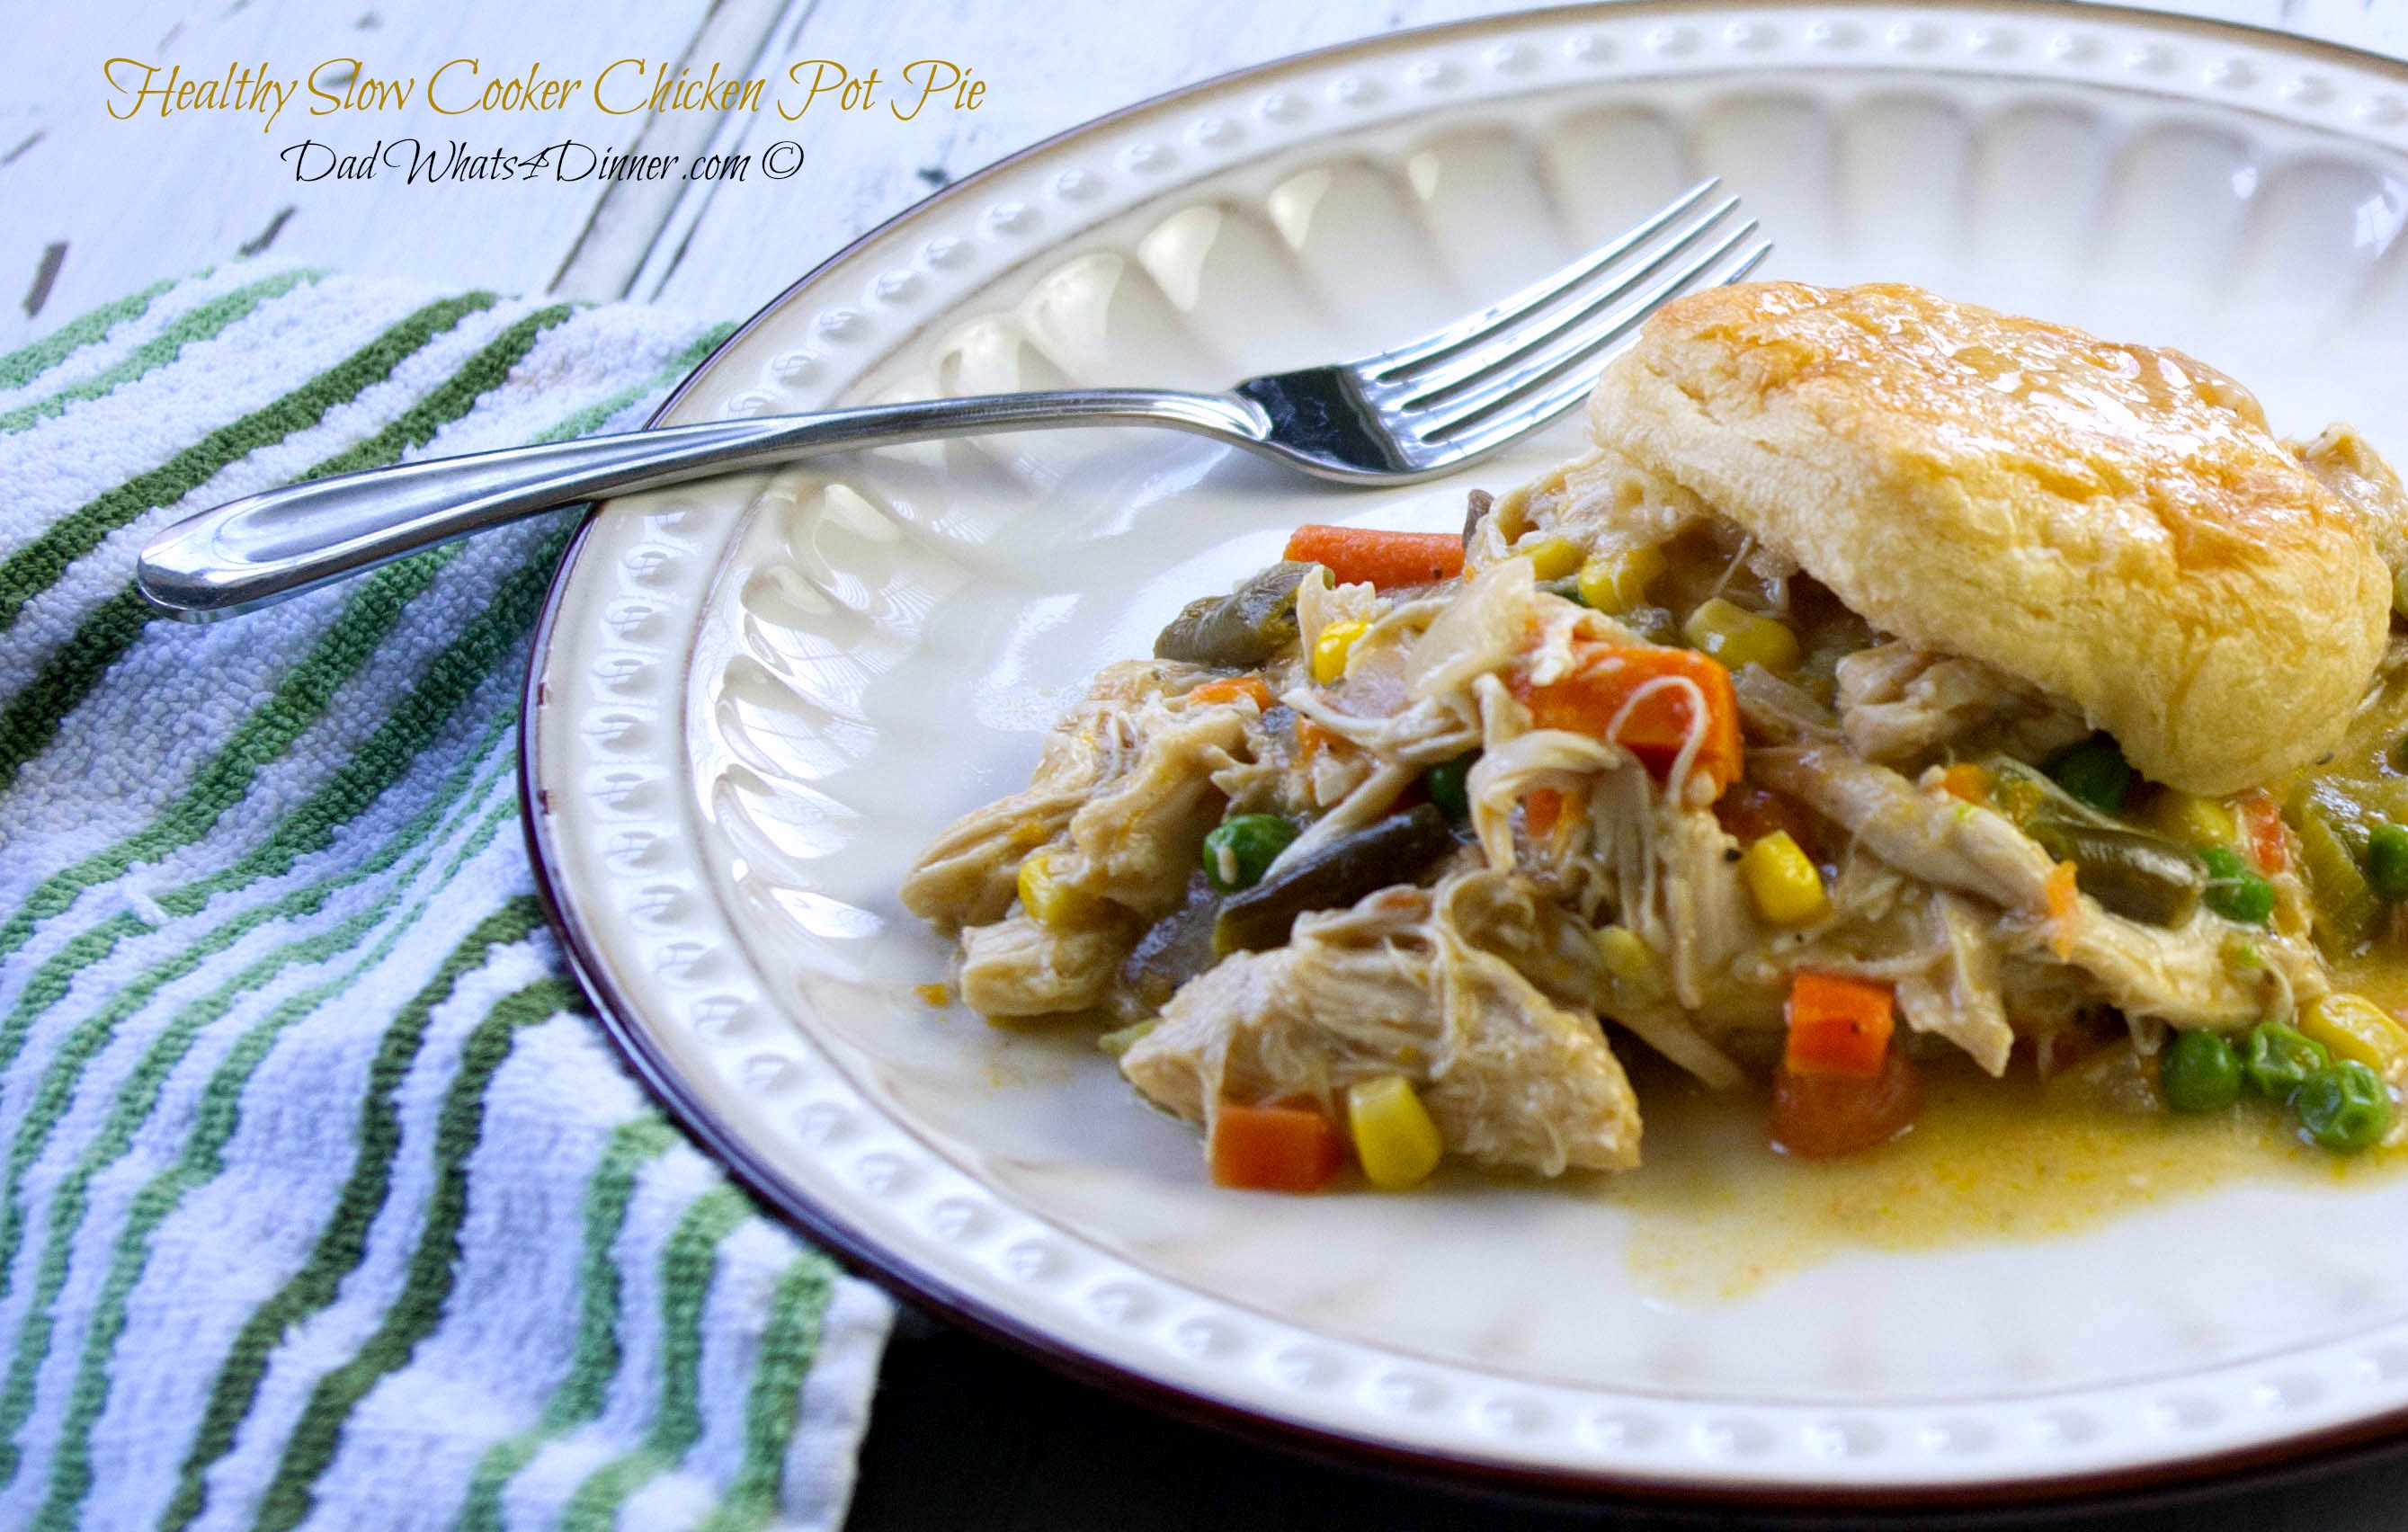 My Healthy Slow Cooker Chicken Pot Pie is a healthier slow cooker version of the comfort food classic. Easy to make with a healthy twist.